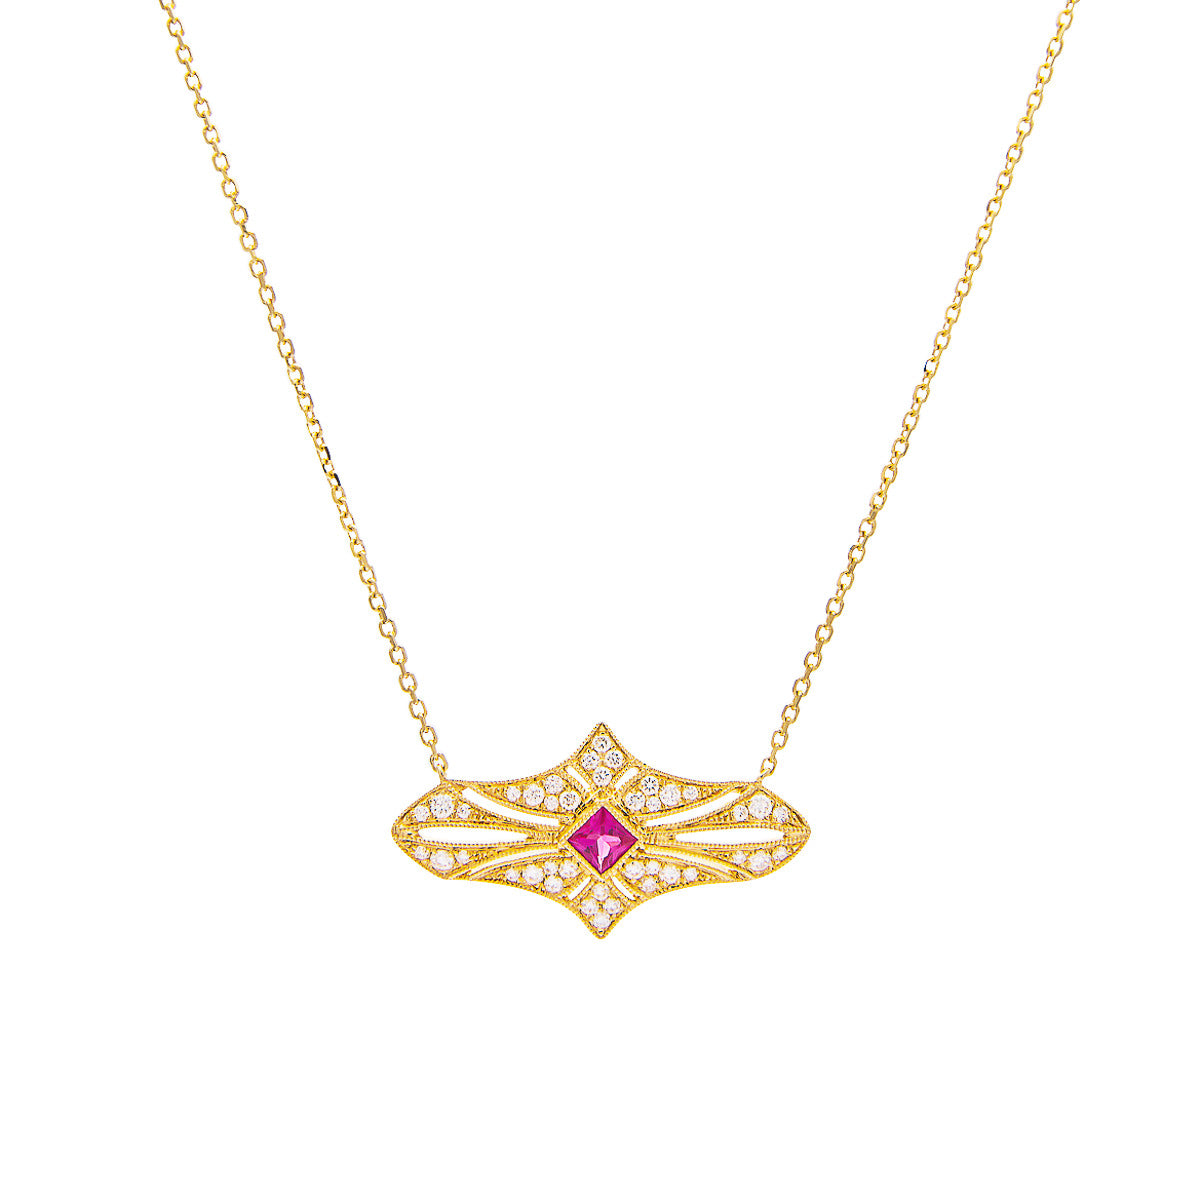 Sabel Collection 18K Yellow Gold Princess Cut Ruby and Diamond Vintage Pendant